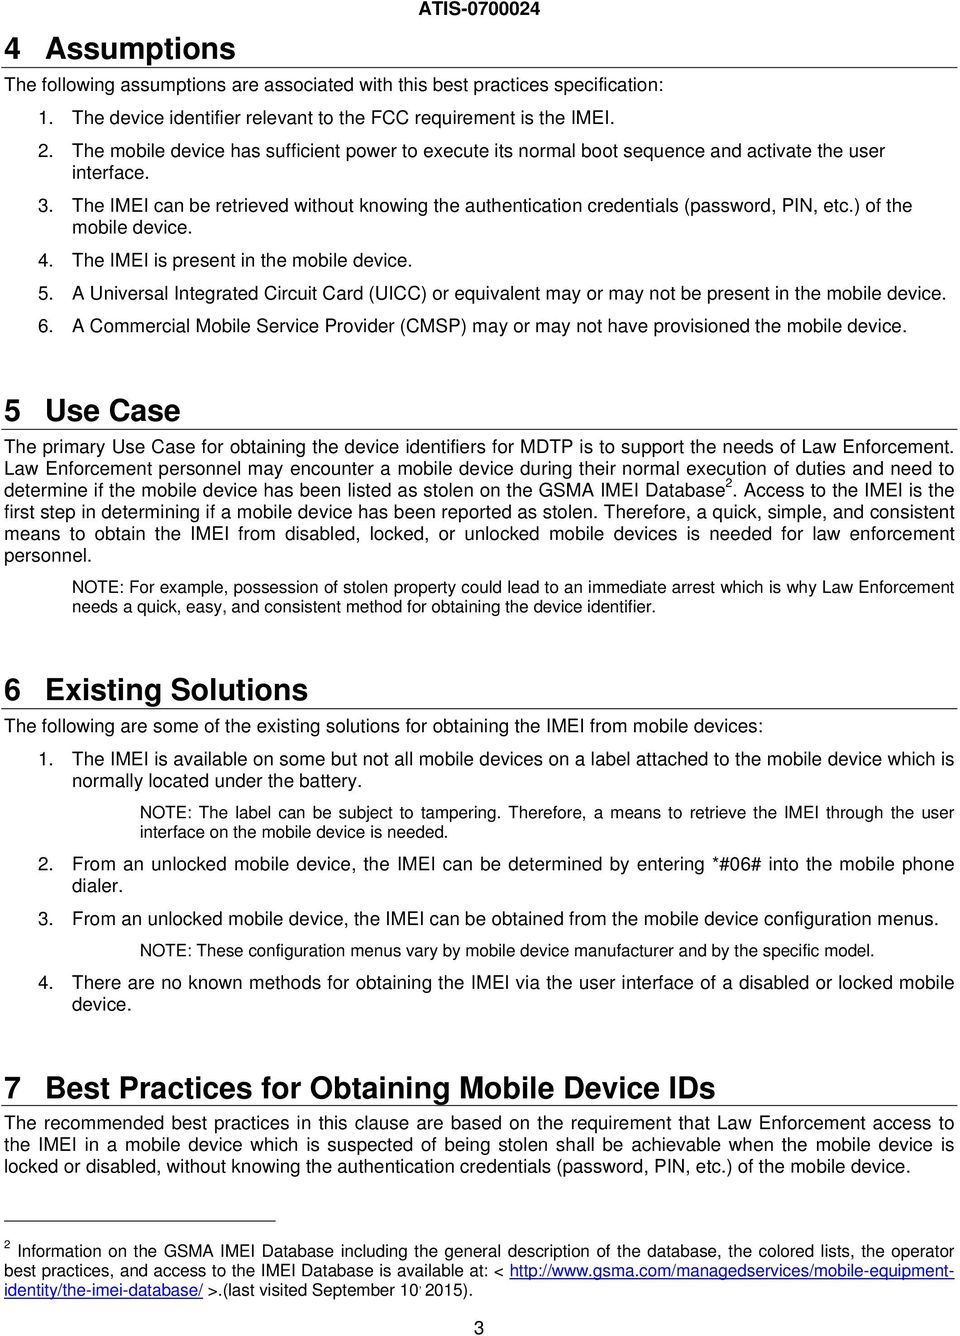 BEST PRACTICES FOR OBTAINING MOBILE DEVICE IDENTIFIERS FOR MOBILE